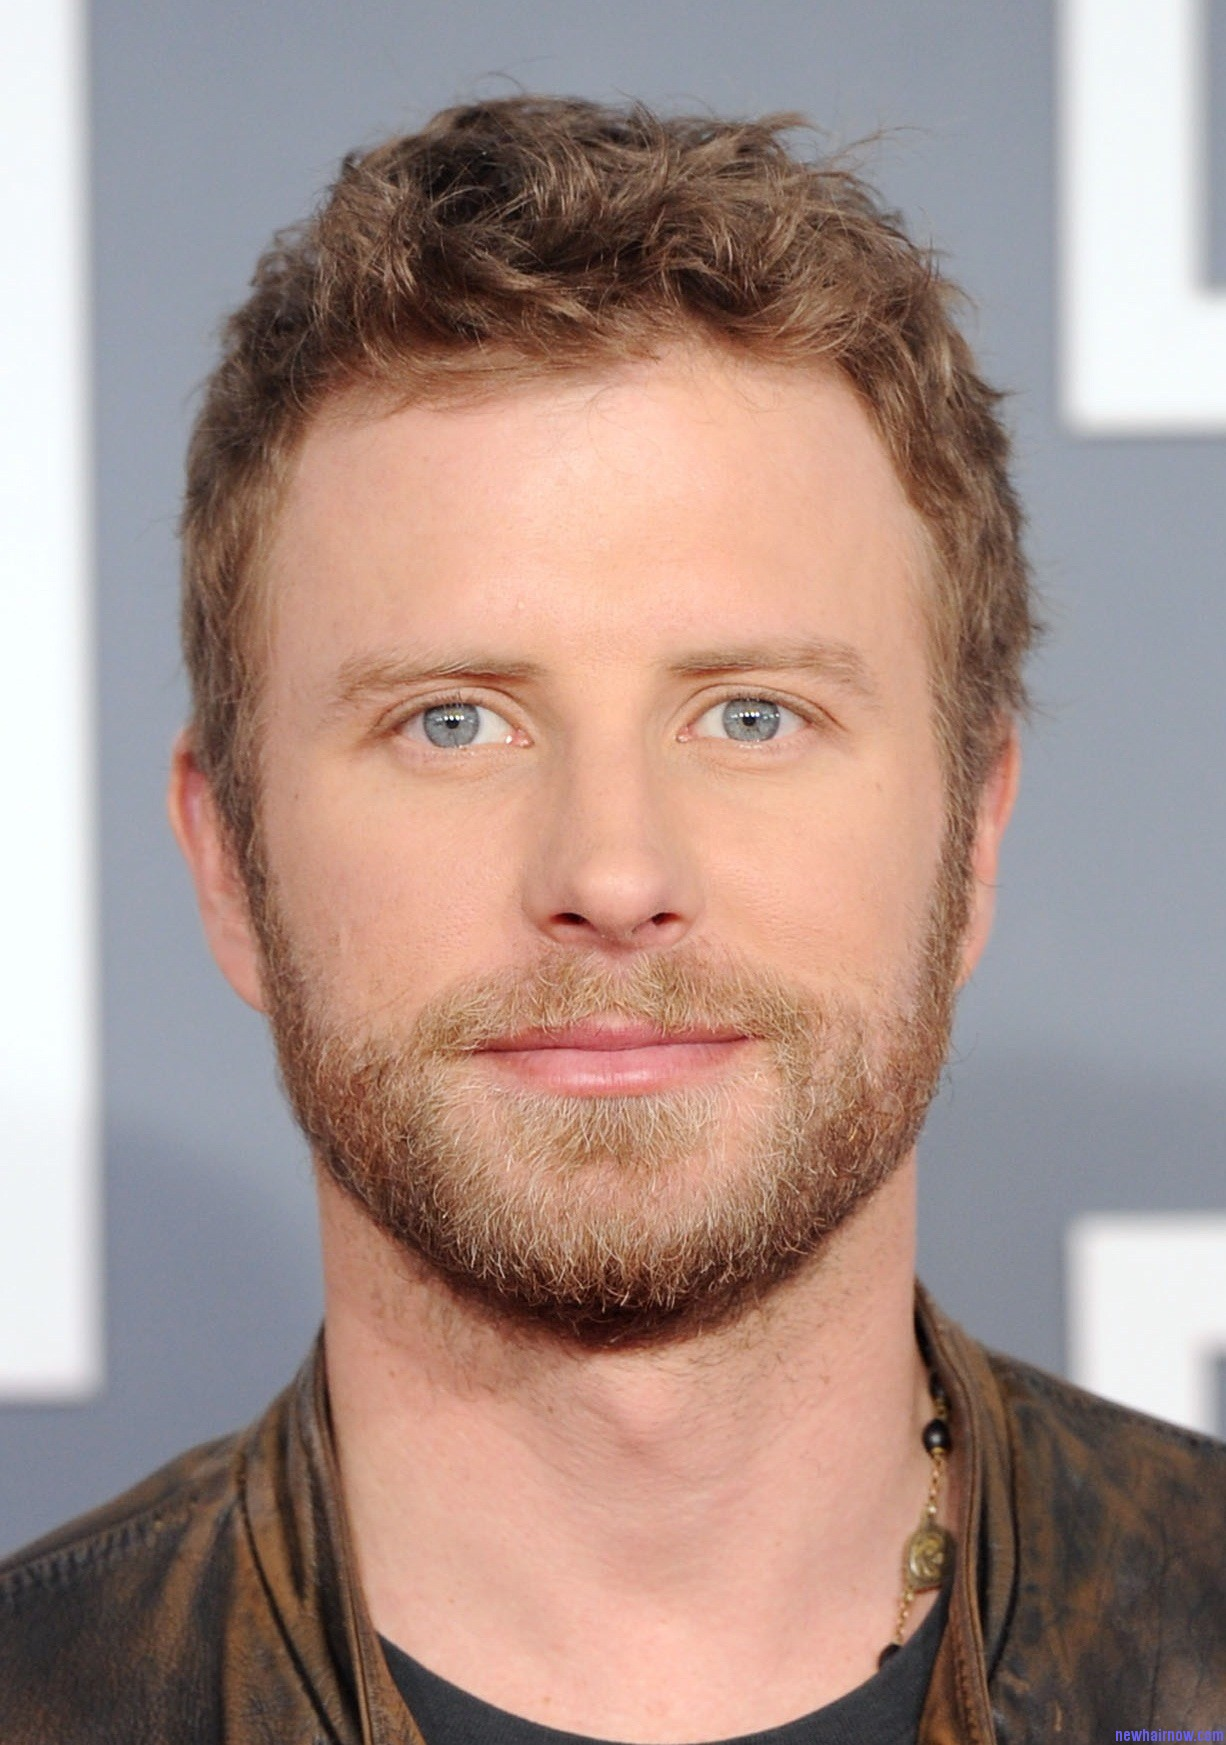 Dierks Bentley Short And Little Curly Hairstyle – New Hair Now